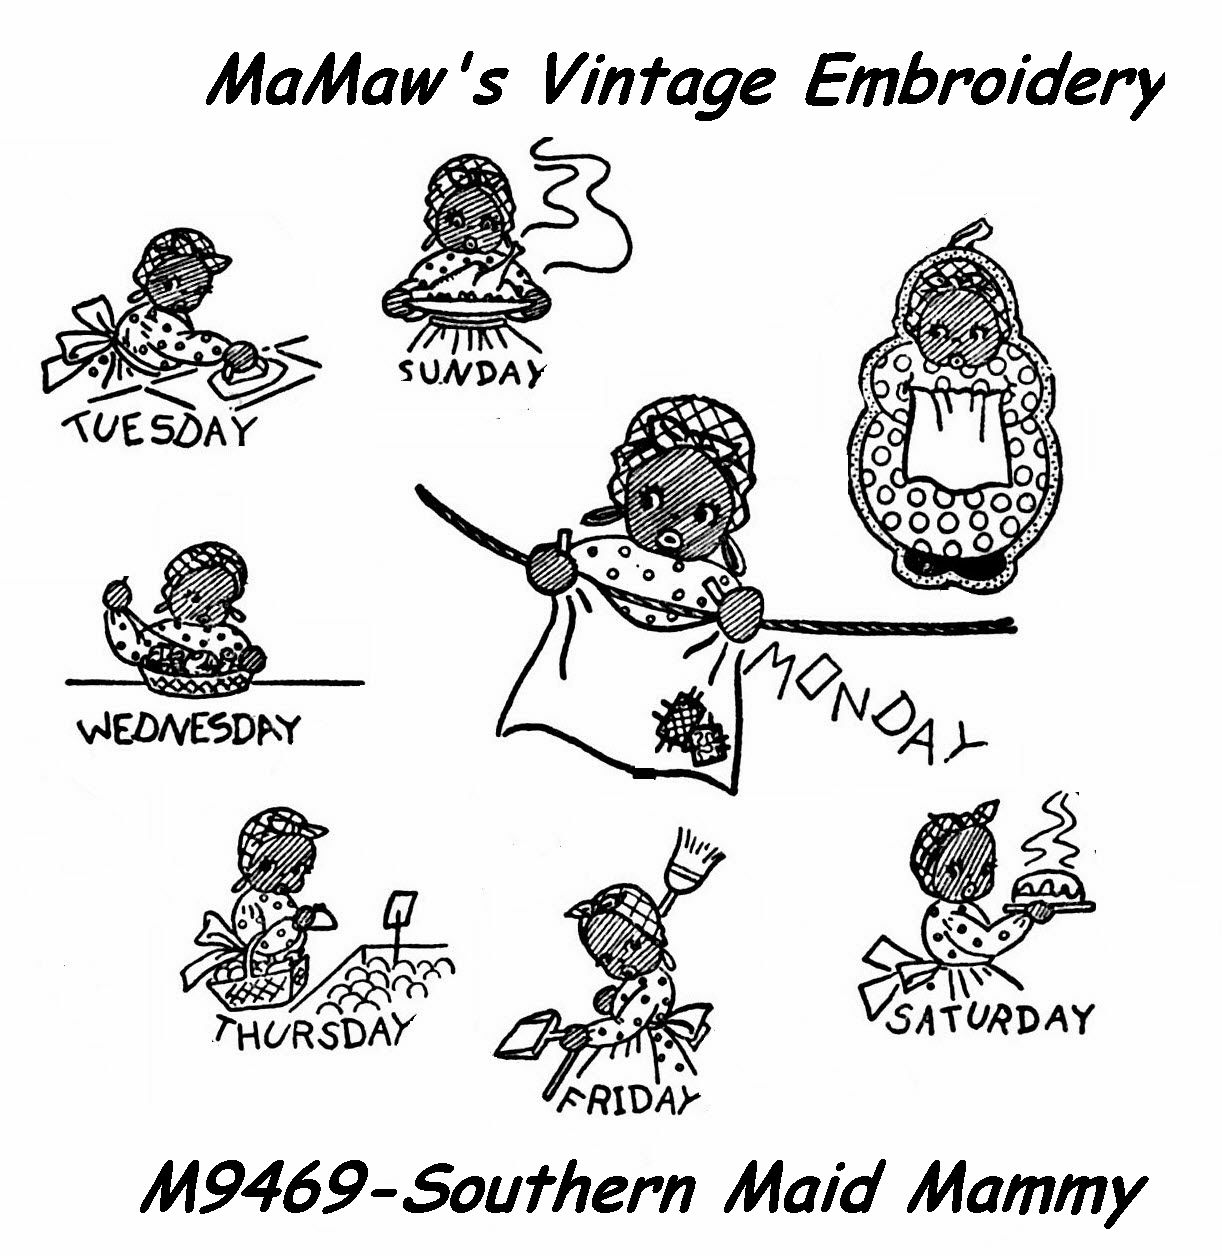 Southern Mammy Maid Dow Embroidery Transfer Pattern Vintage